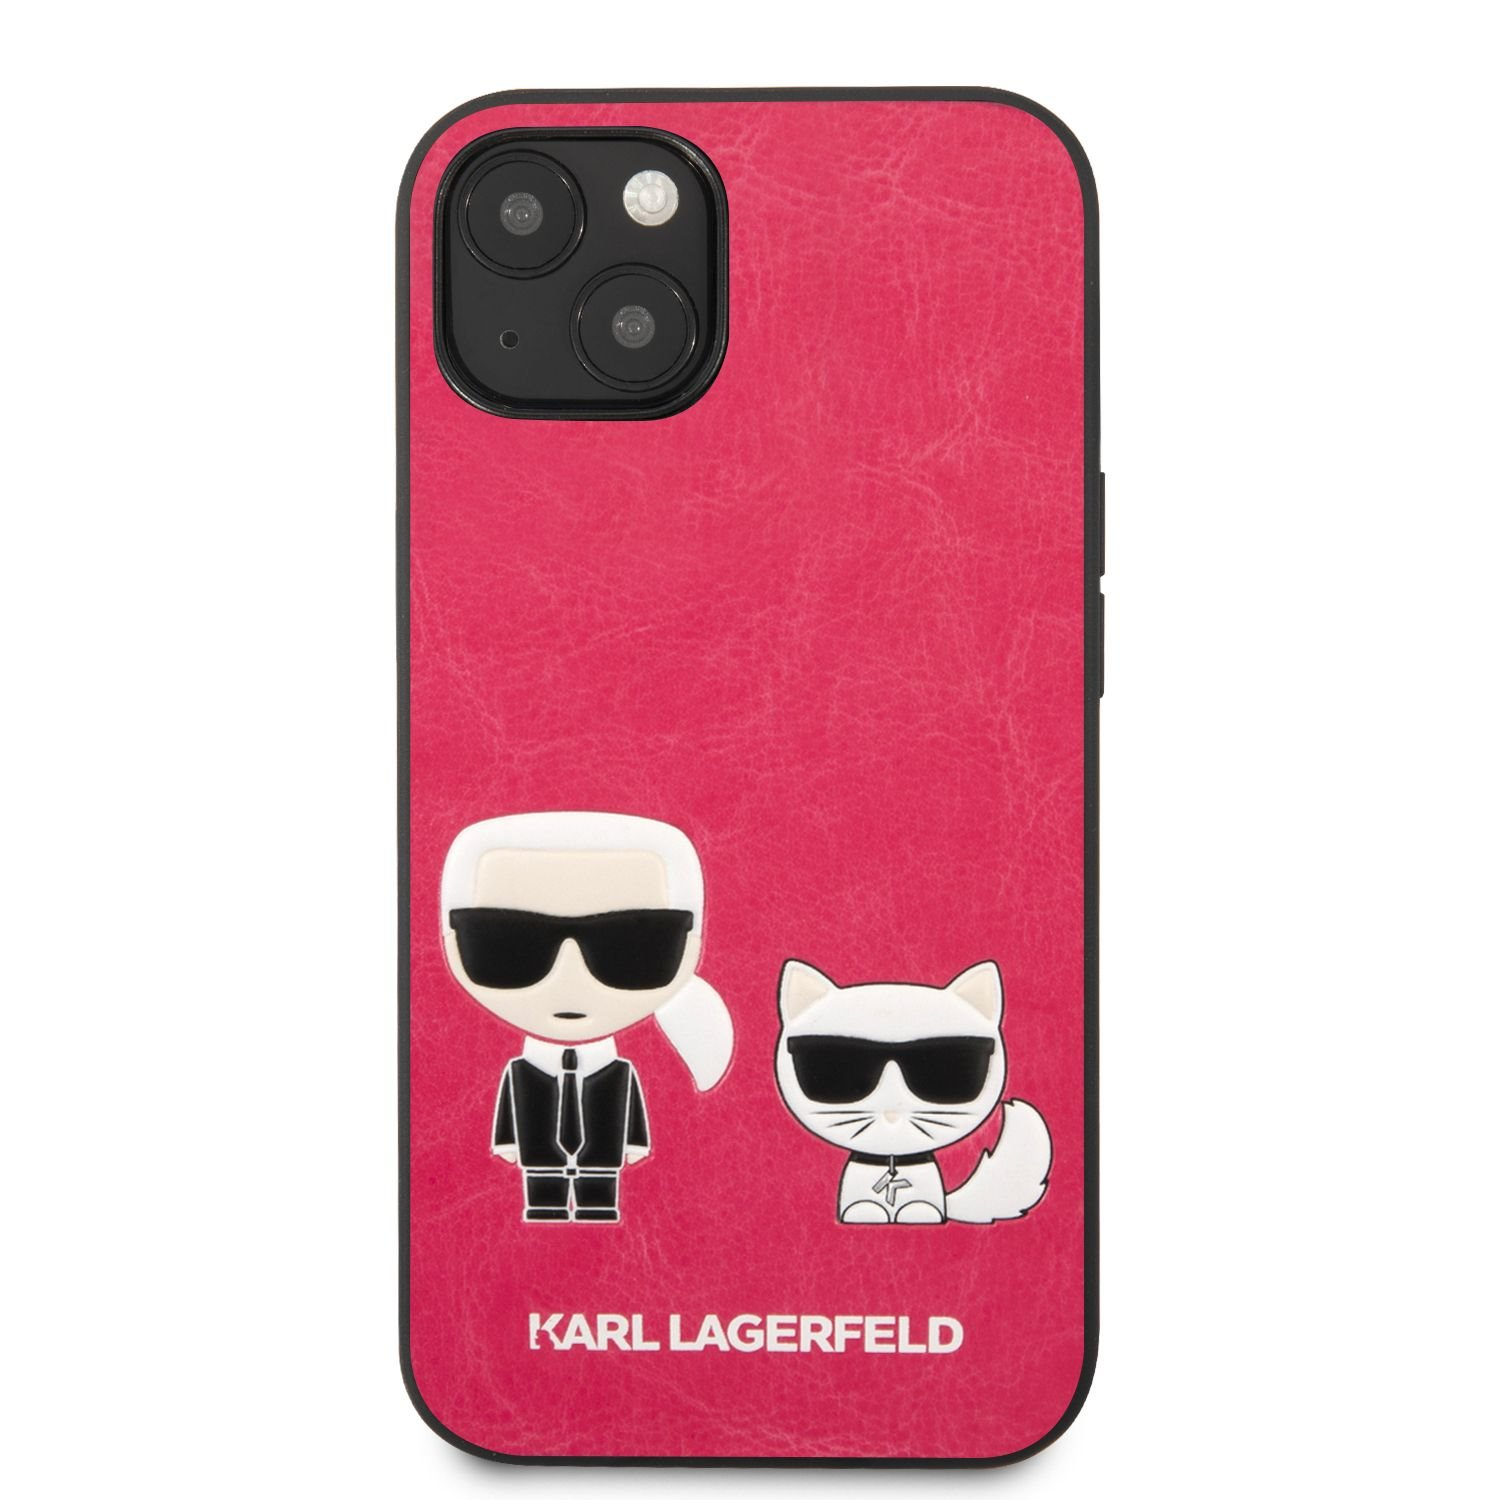 Pouzdro Karl Lagerfeld and Choupette PU Leather KLHCP13MPCUSKCP pro Apple iPhone 13, fuchsie